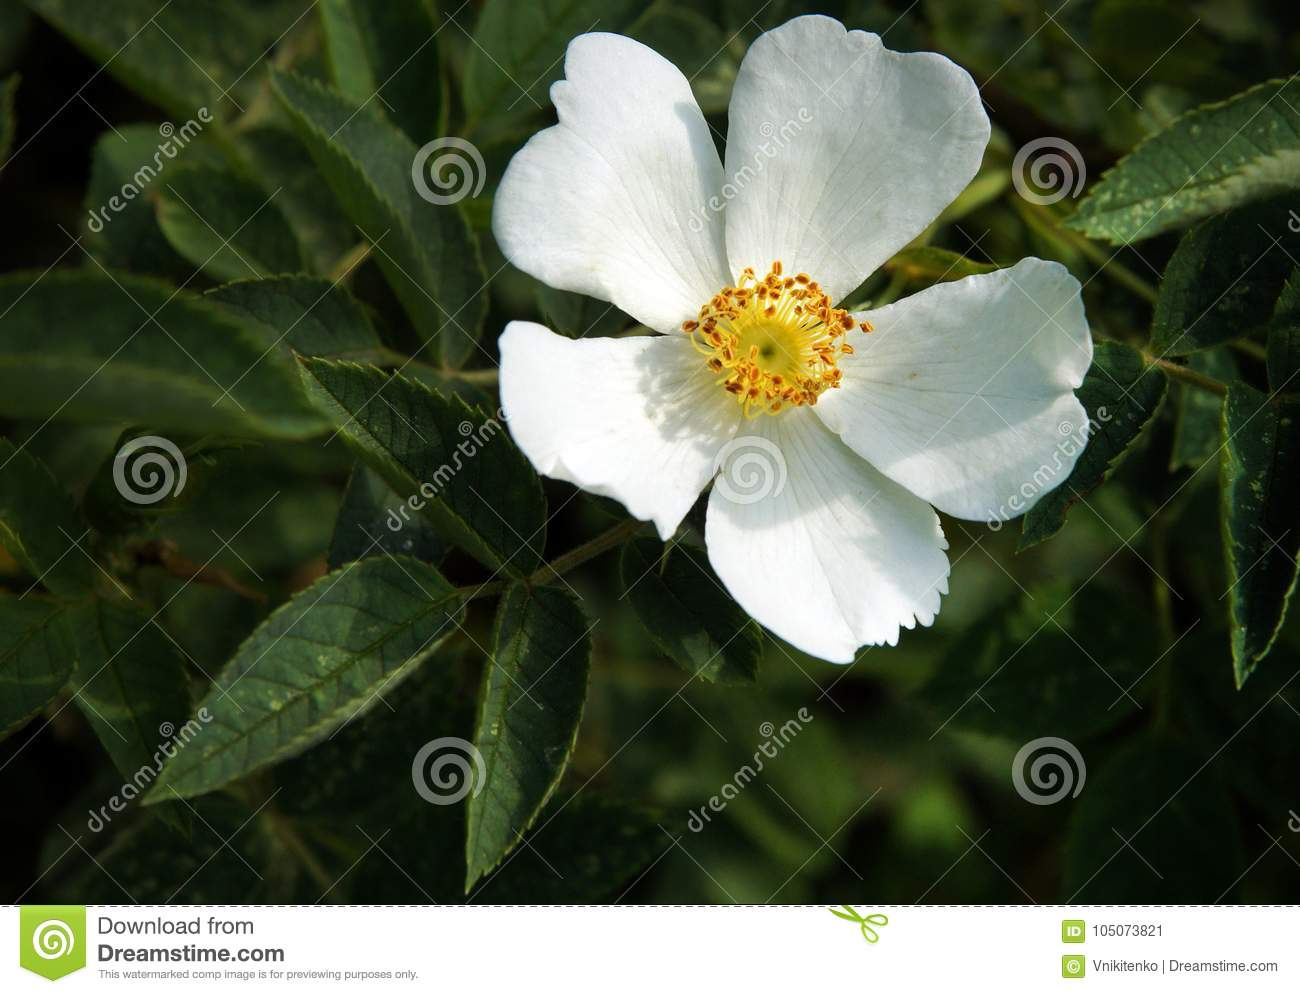 White Flowers Of Dog Rose Stock Image Image Of Natural 105073821